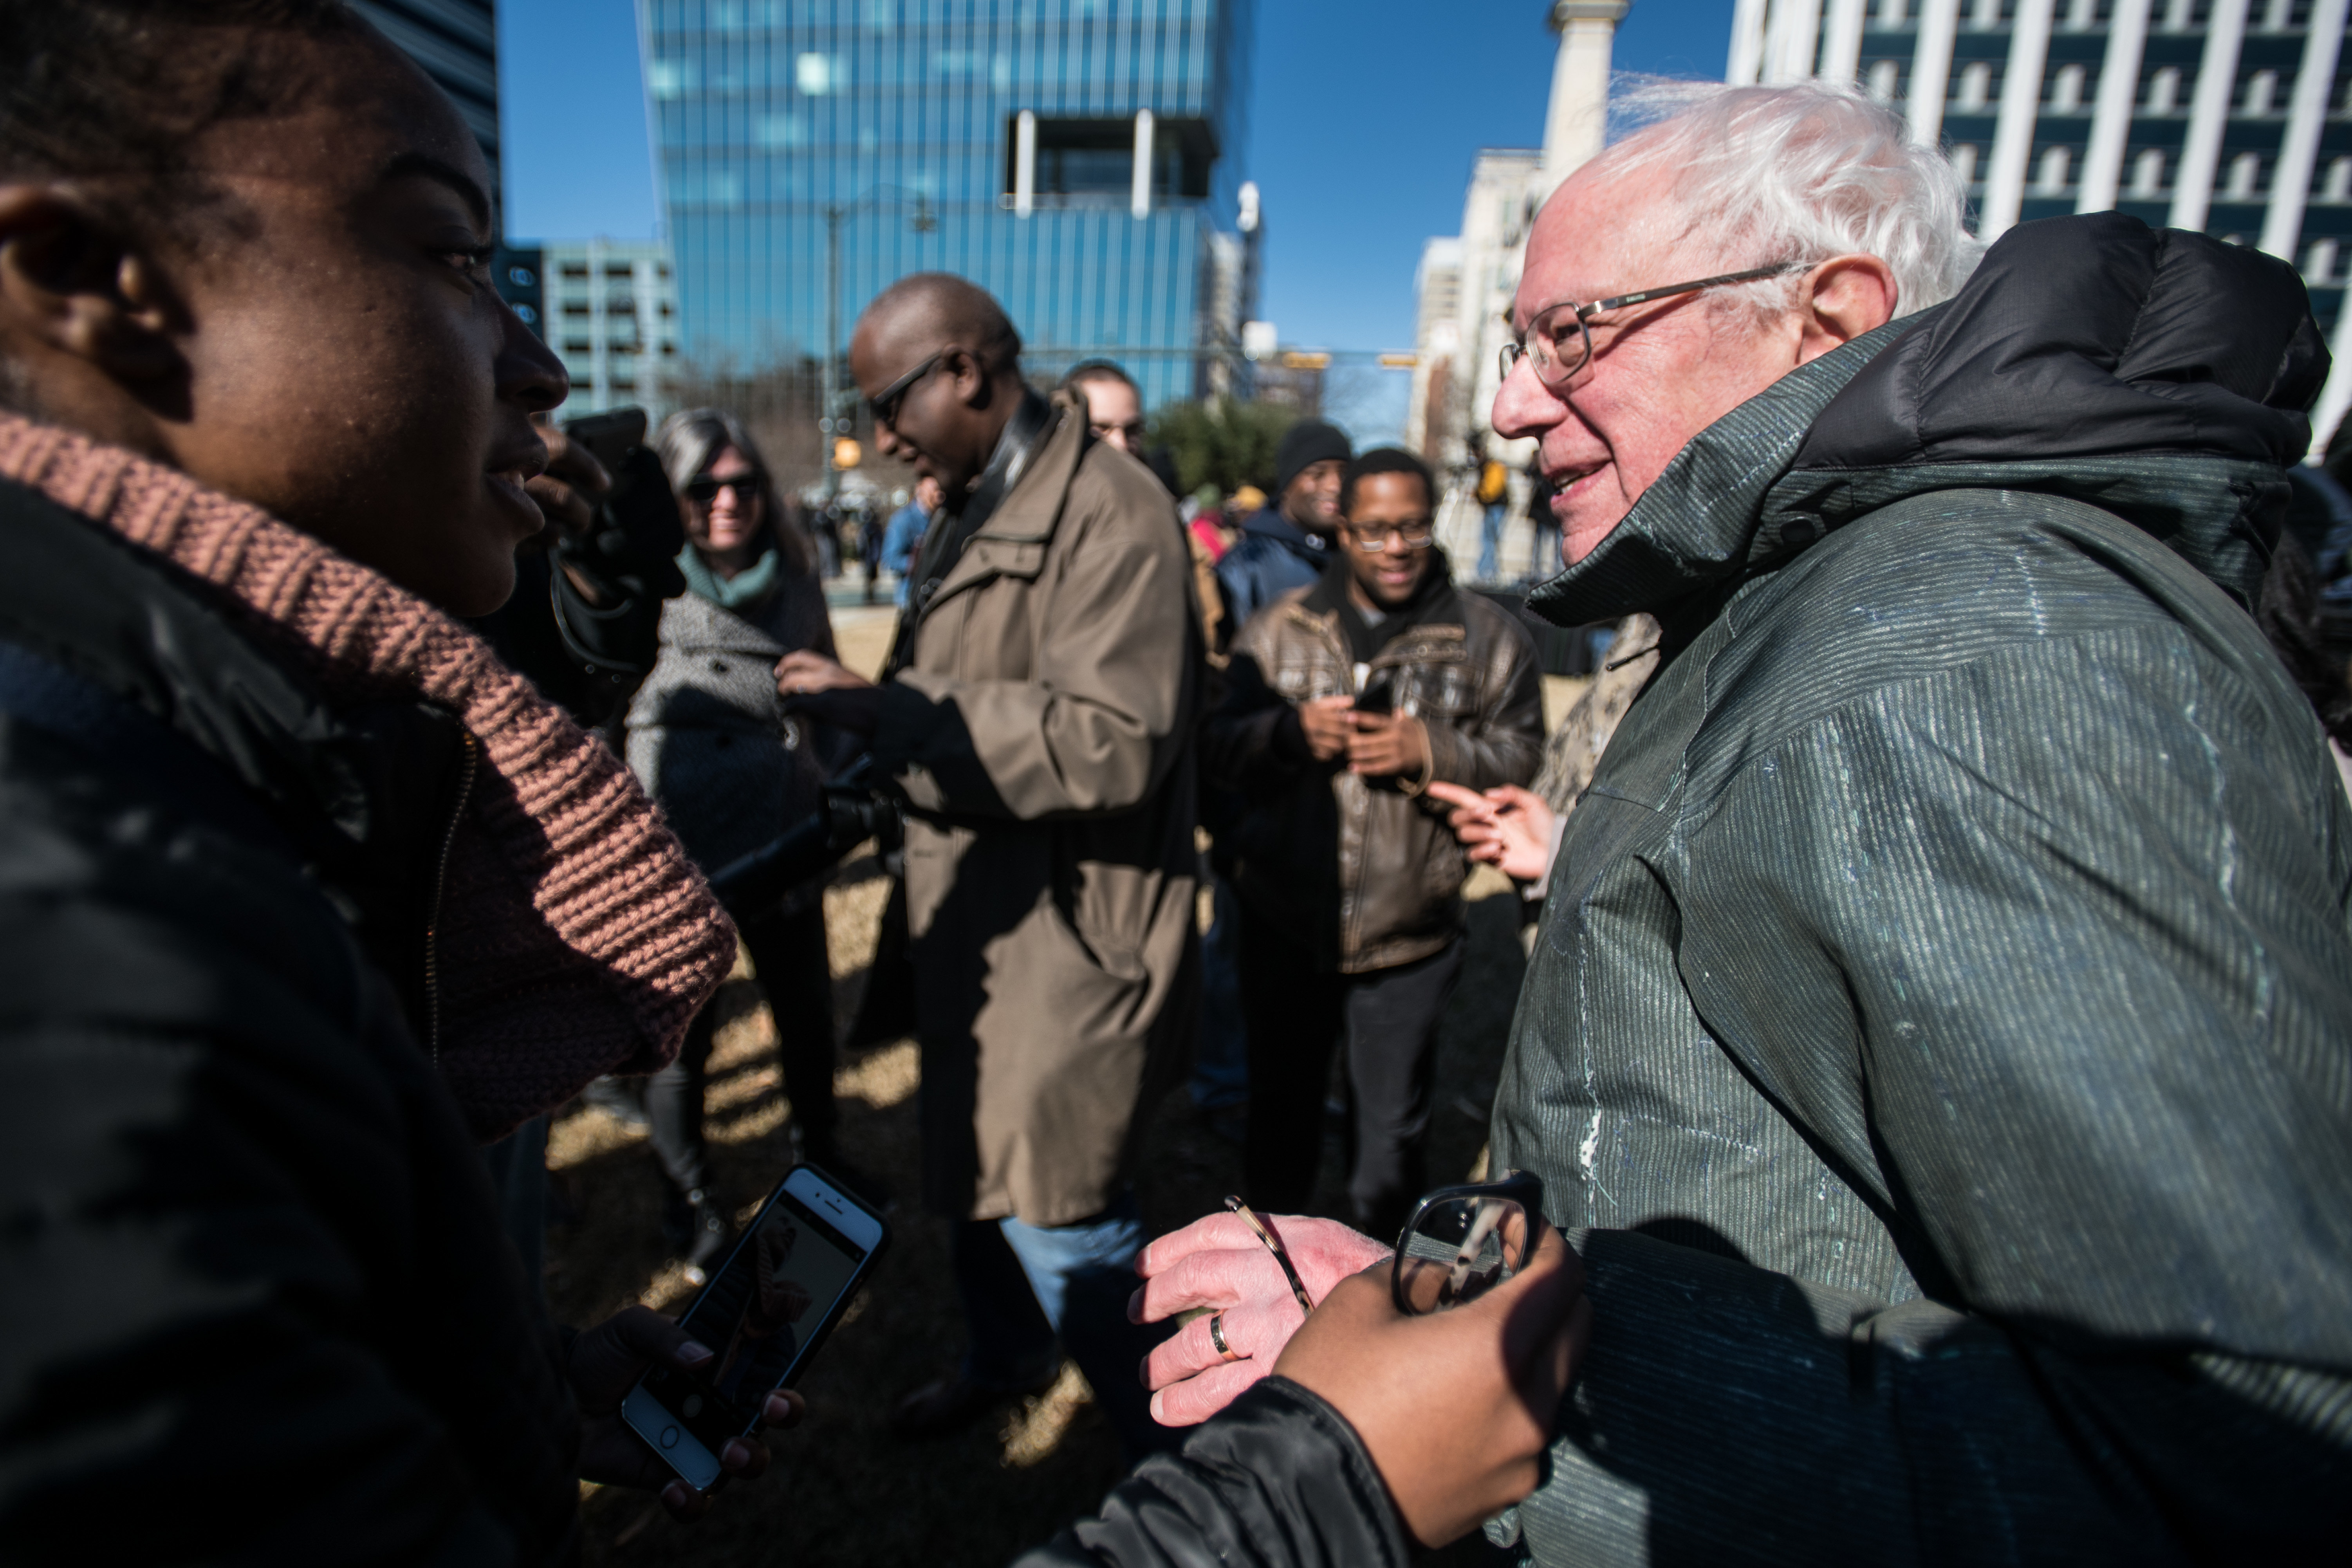 Sen. Bernie Sanders (I-Vt.) walks through the crowd during the annual Martin Luther King Jr. Day at the Dome event on Jan. 21